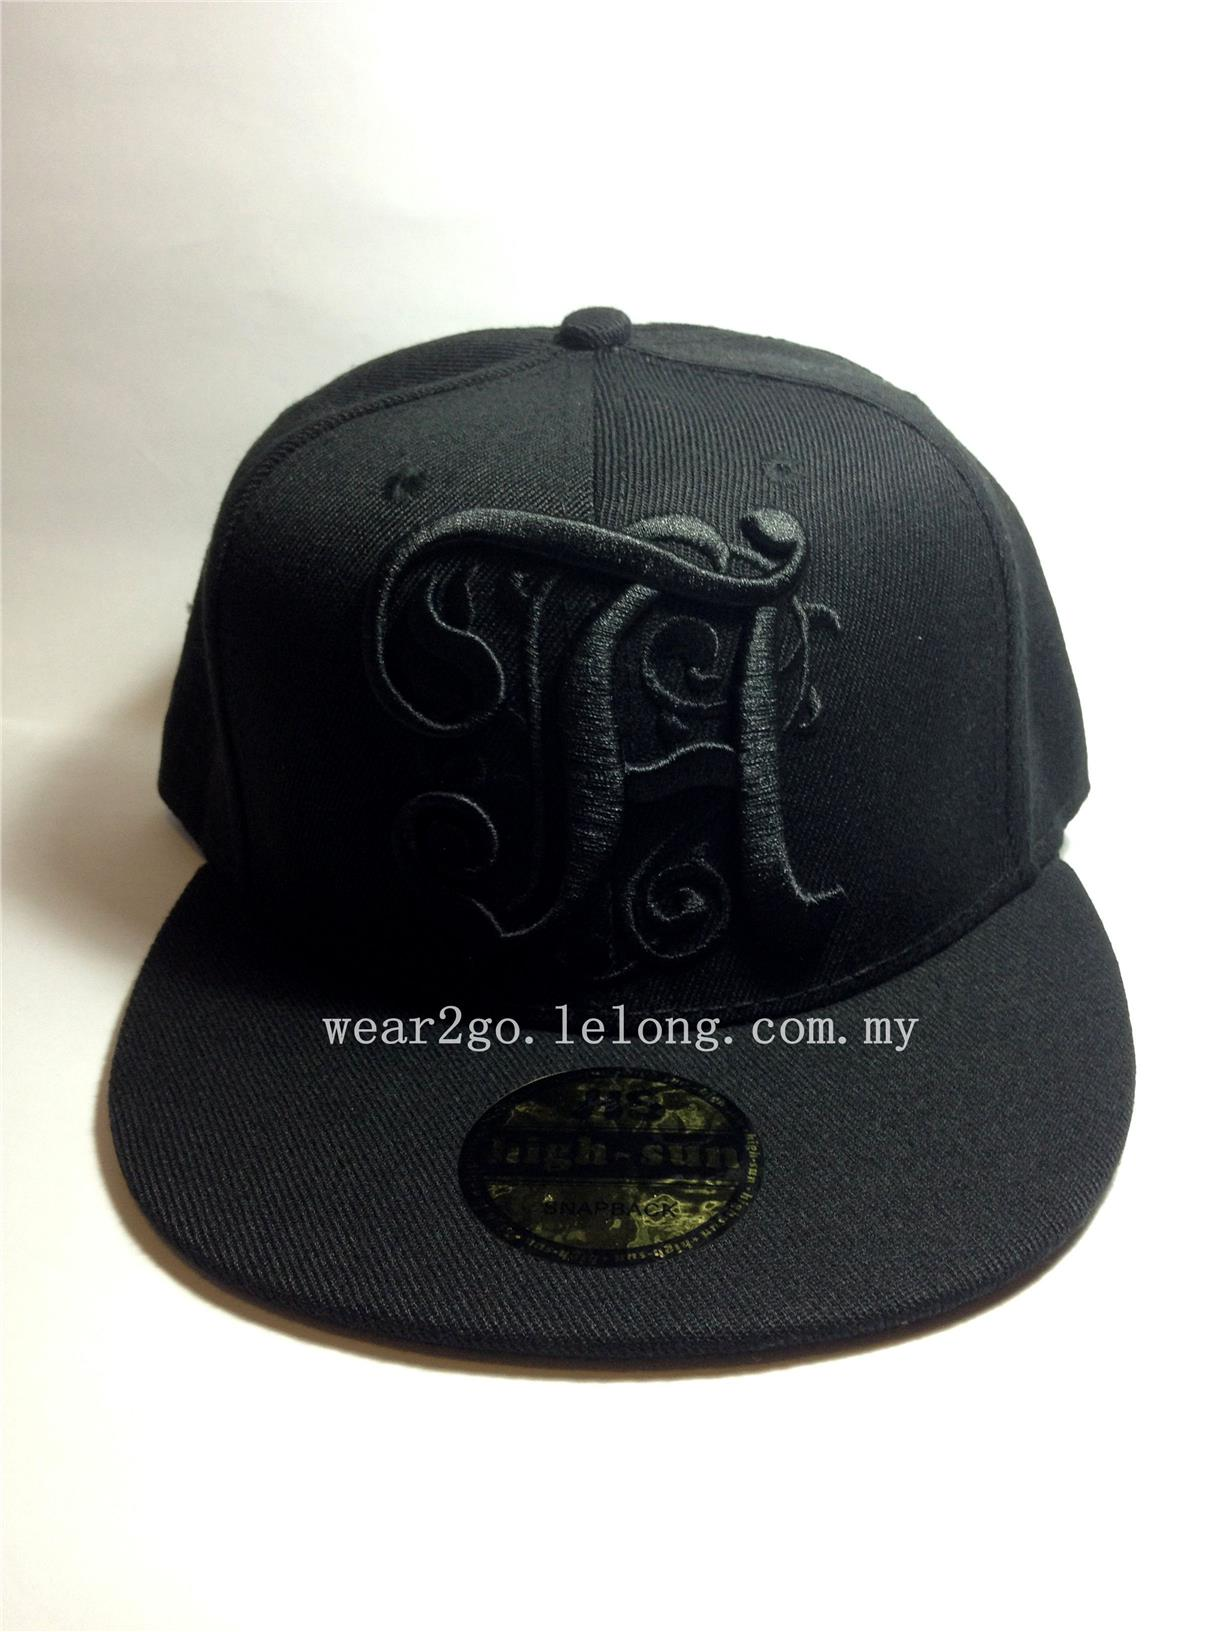 TAEYANG Snapback in Black Color & Black Logo